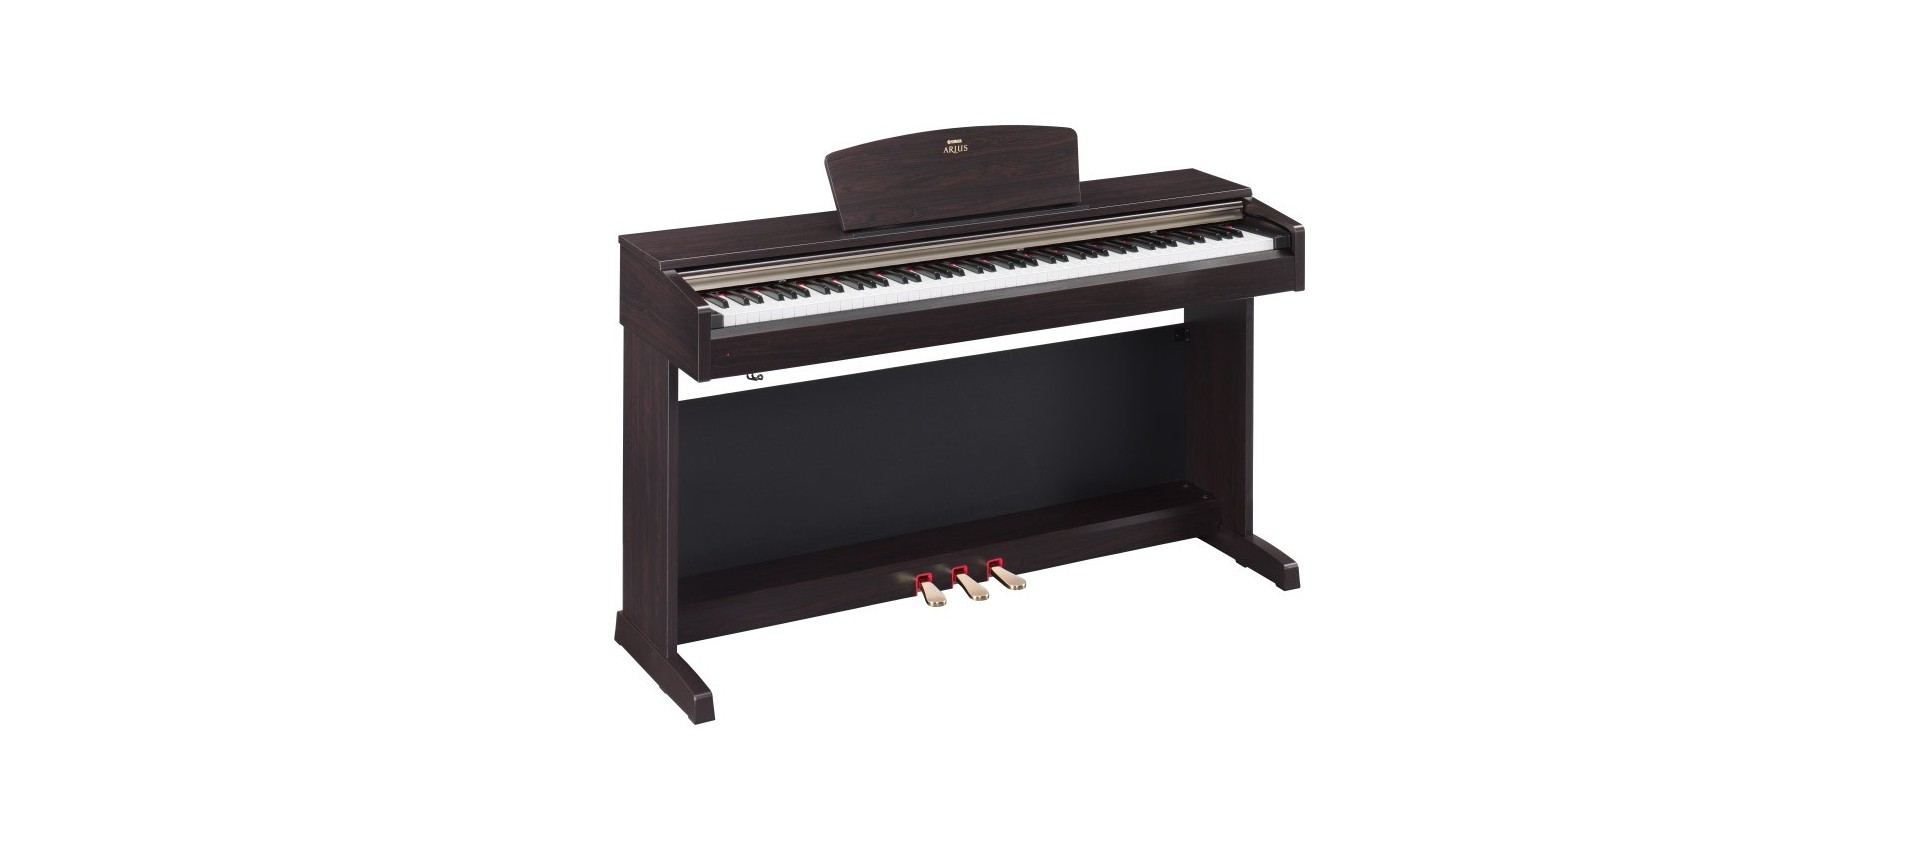 yamaha ydp161 digital piano con mobile. Black Bedroom Furniture Sets. Home Design Ideas